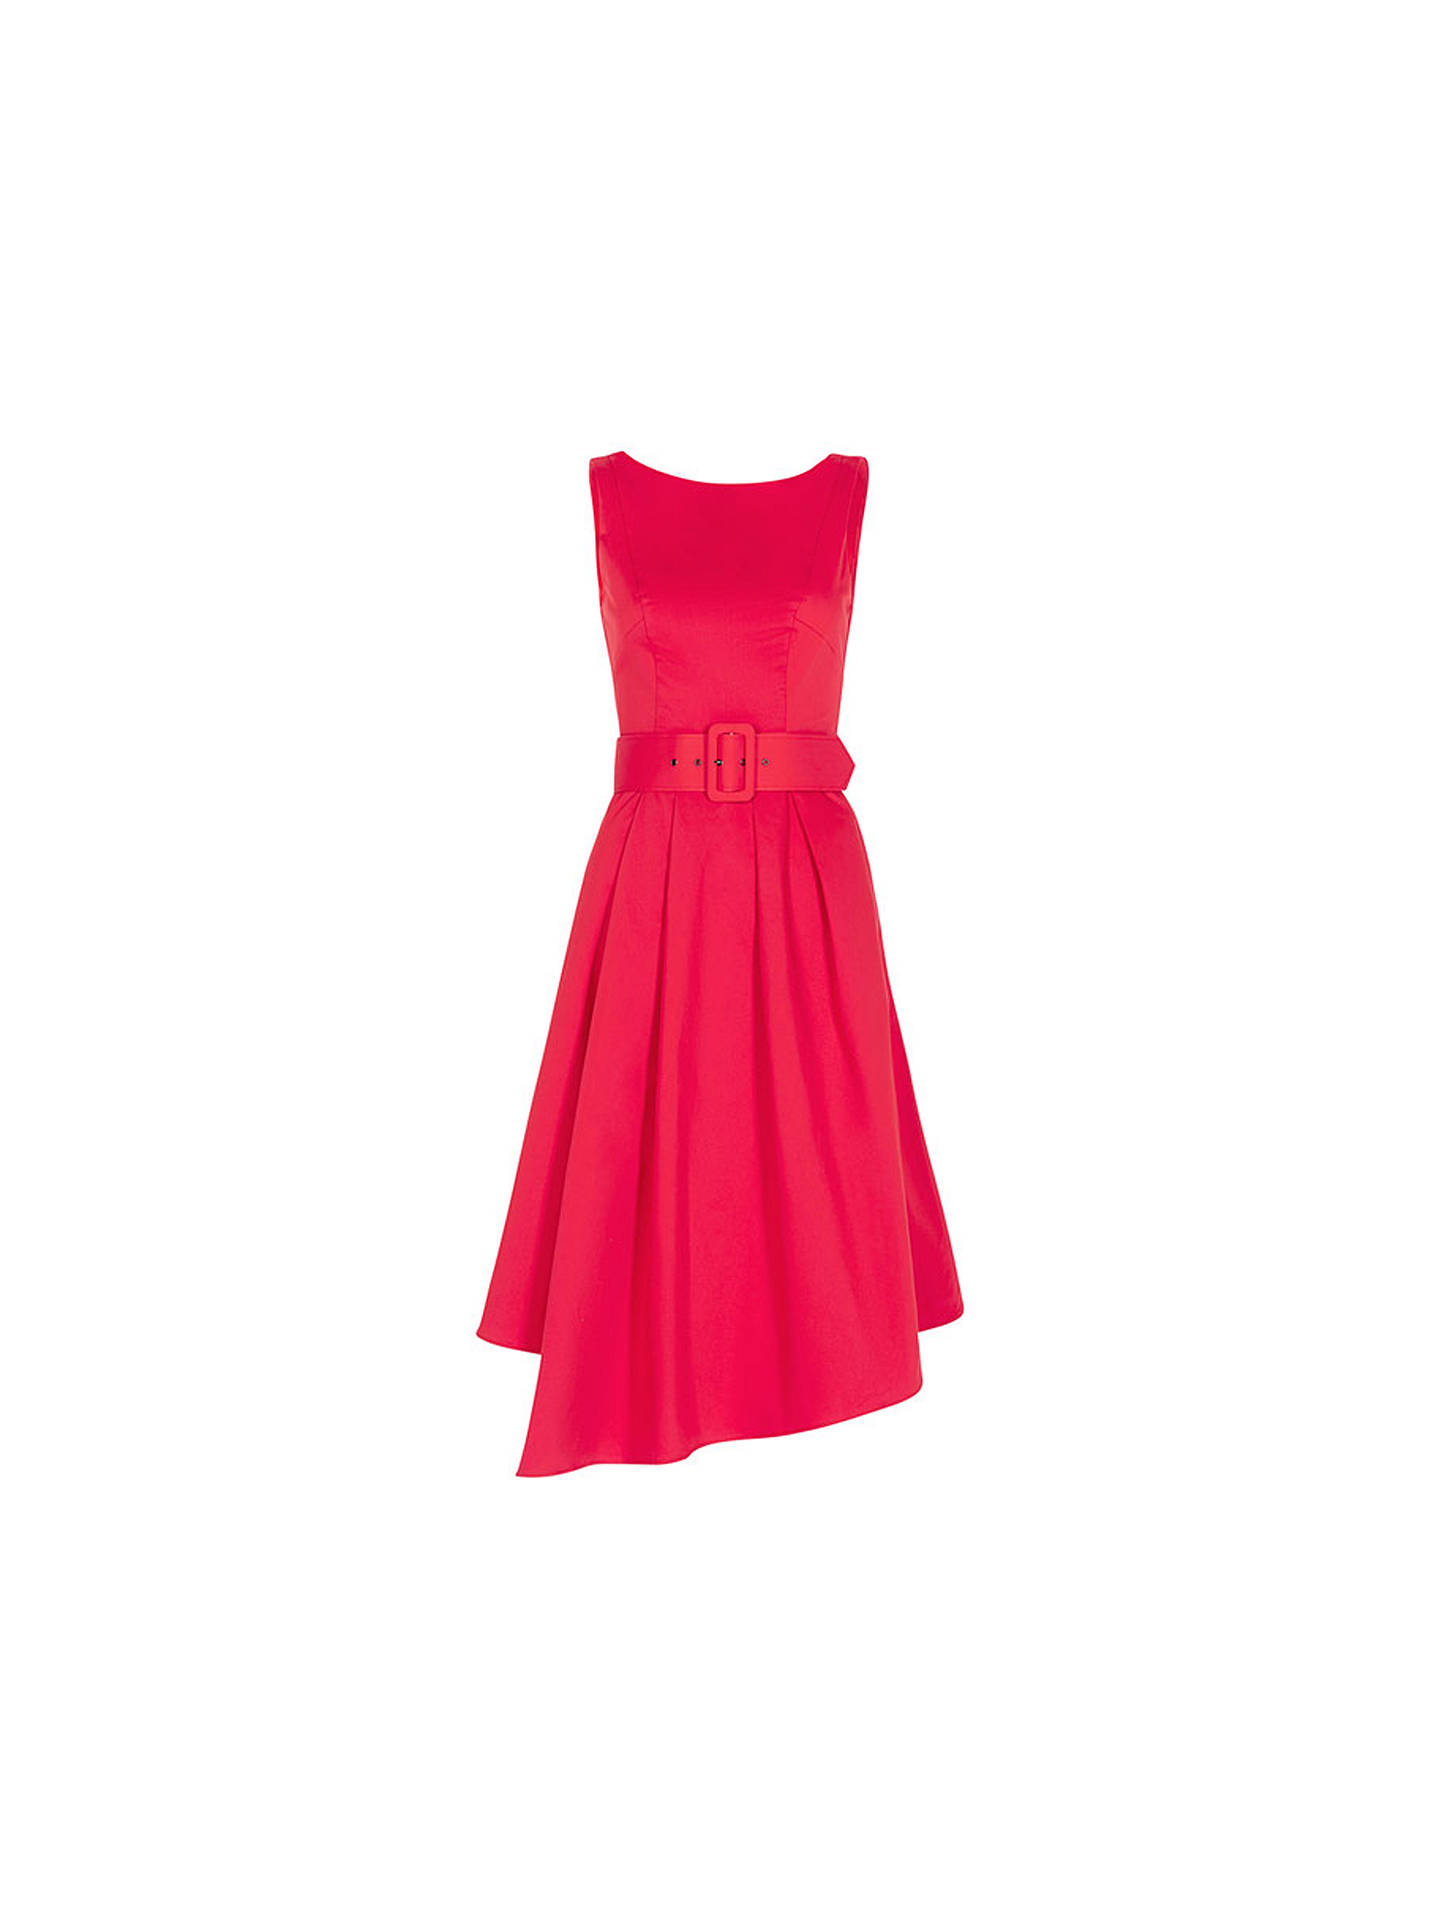 BuyCoast Isabelle Belted Dress, Hot Pink, 6 Online at johnlewis.com